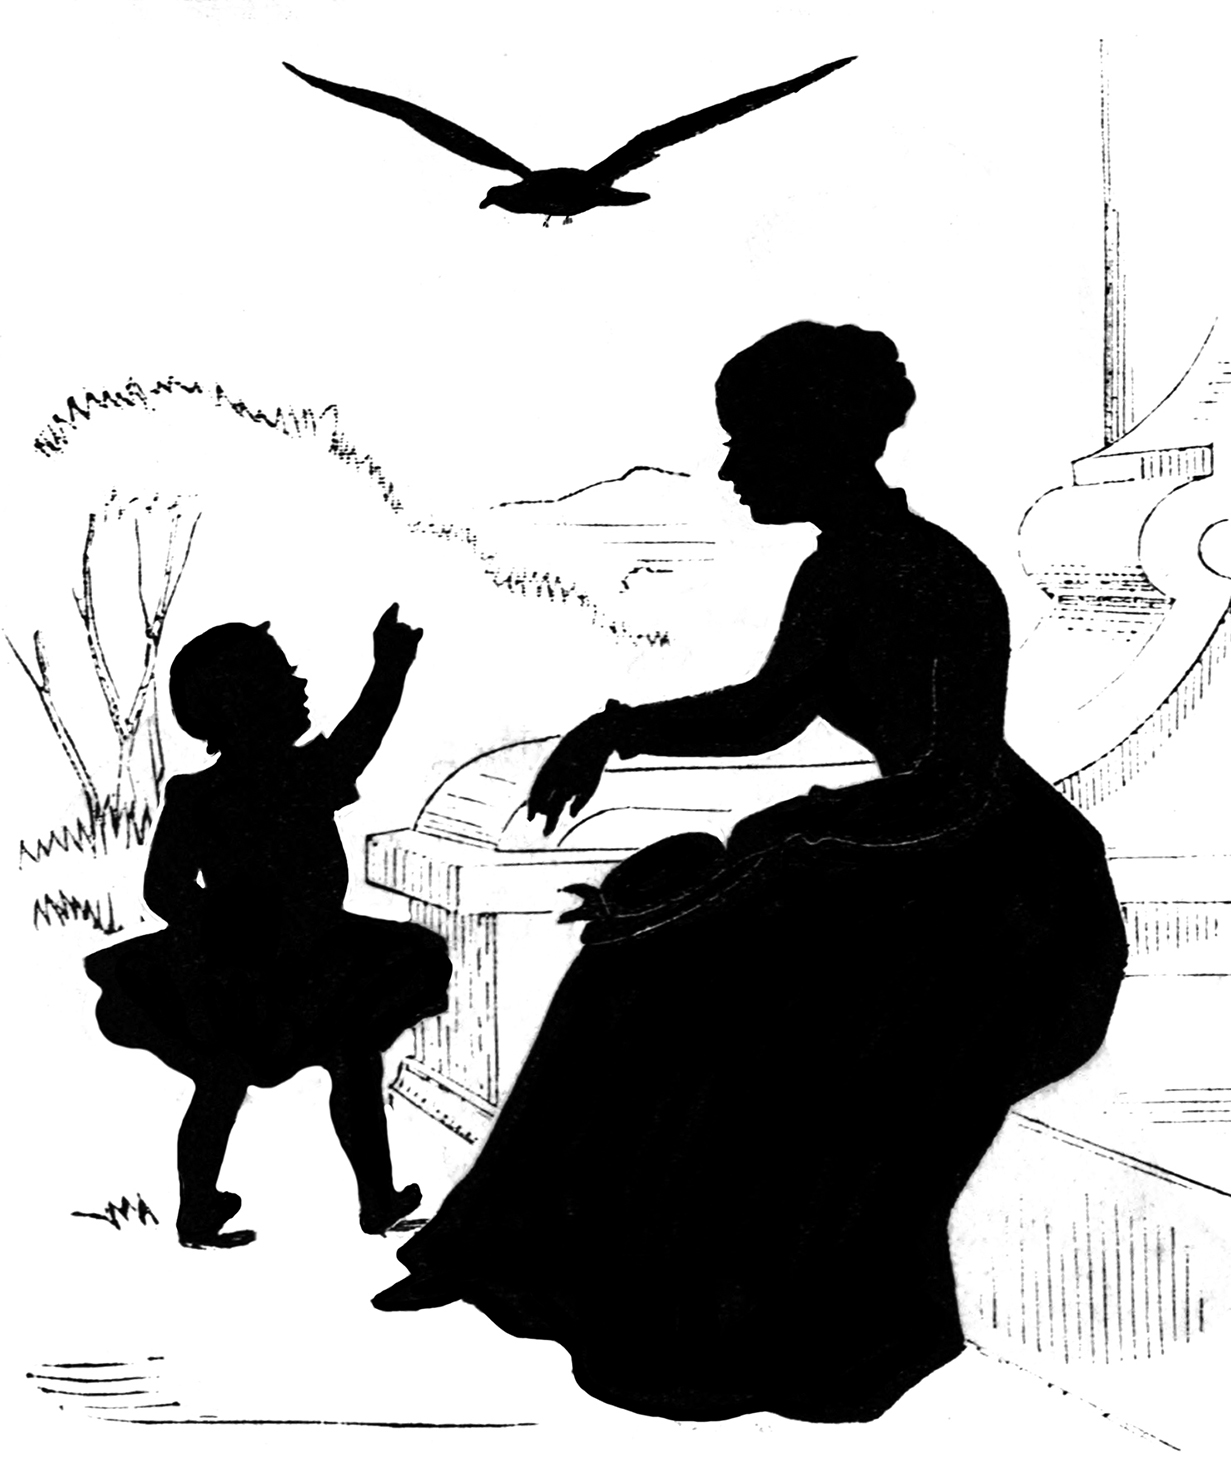 victorian silhouette mother child bird